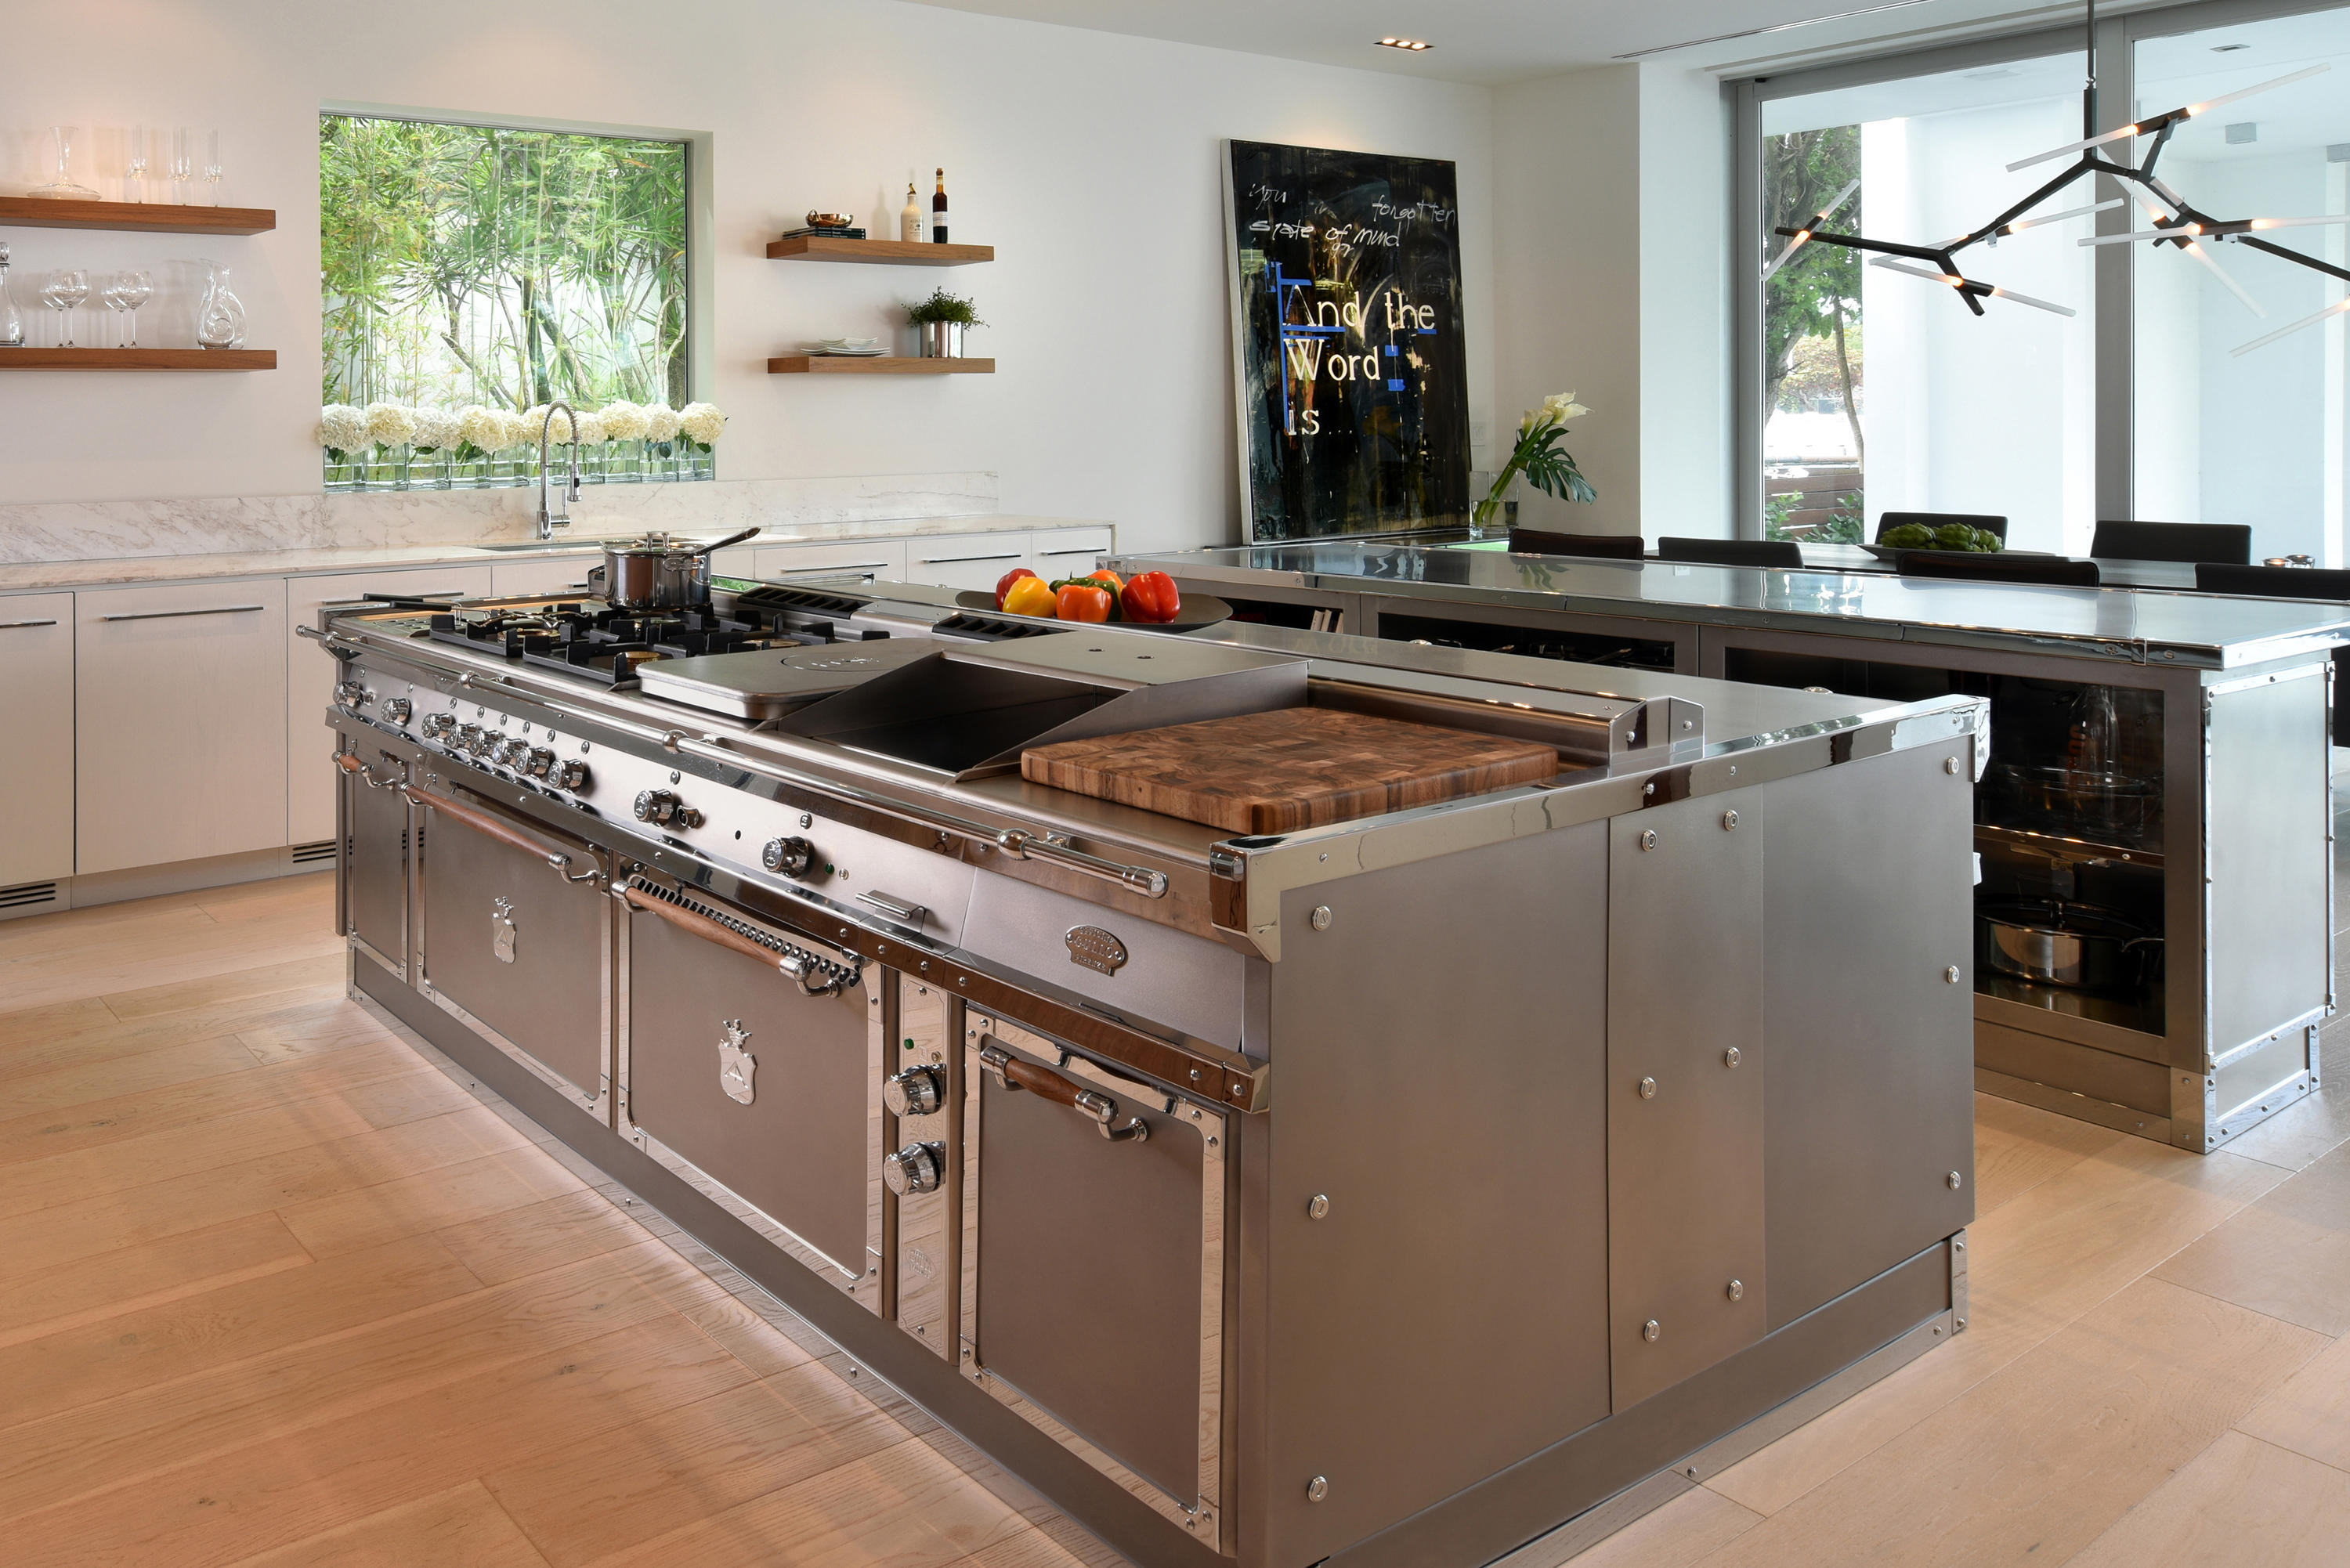 MIAMI STEEL ISLAND KITCHEN Island kitchens from ficine Gullo